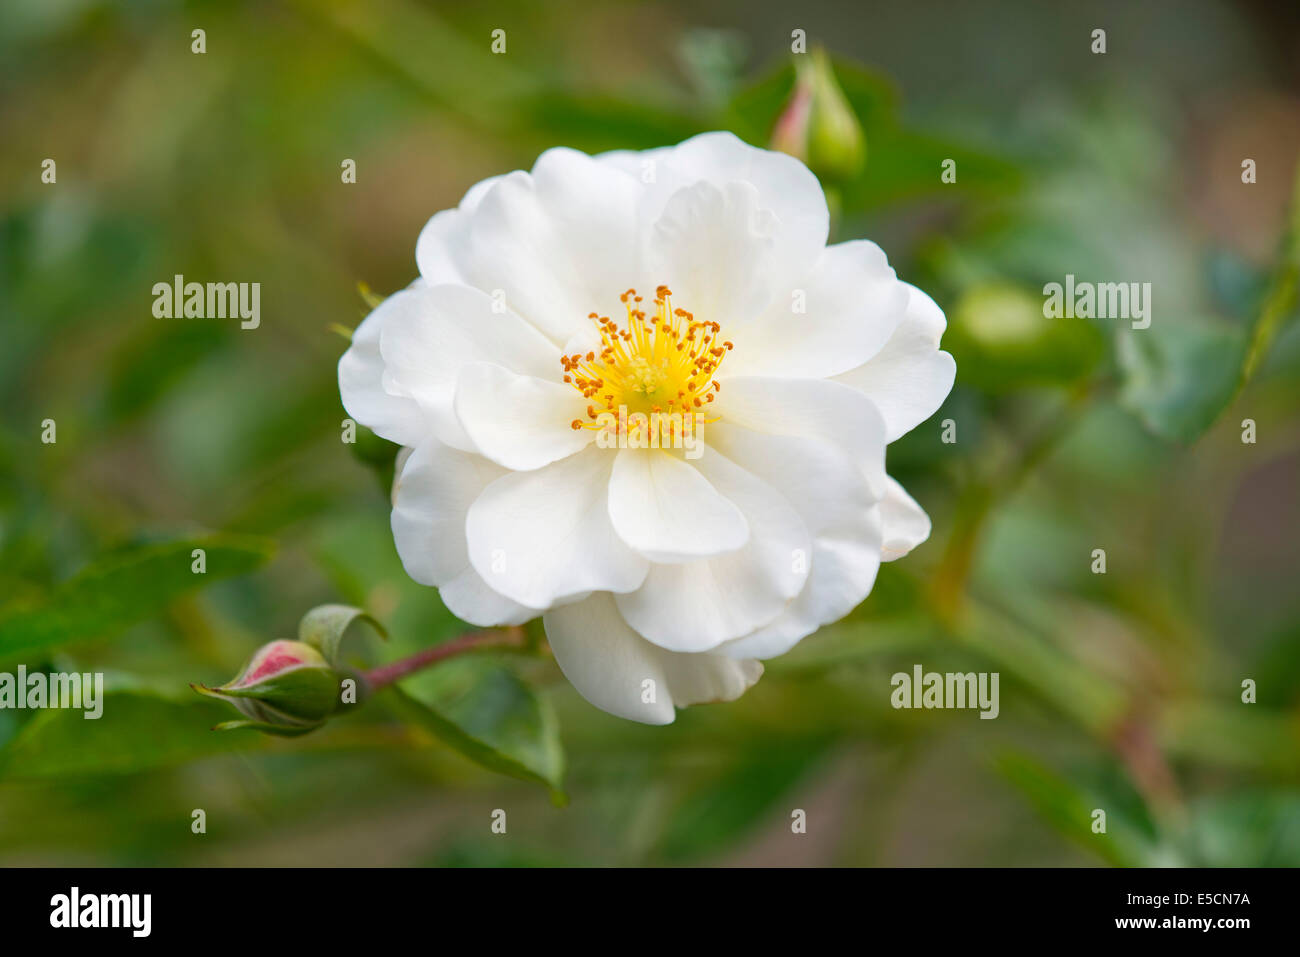 Rose (Rosa spp.), white blossom, Lower Saxony, Germany - Stock Image